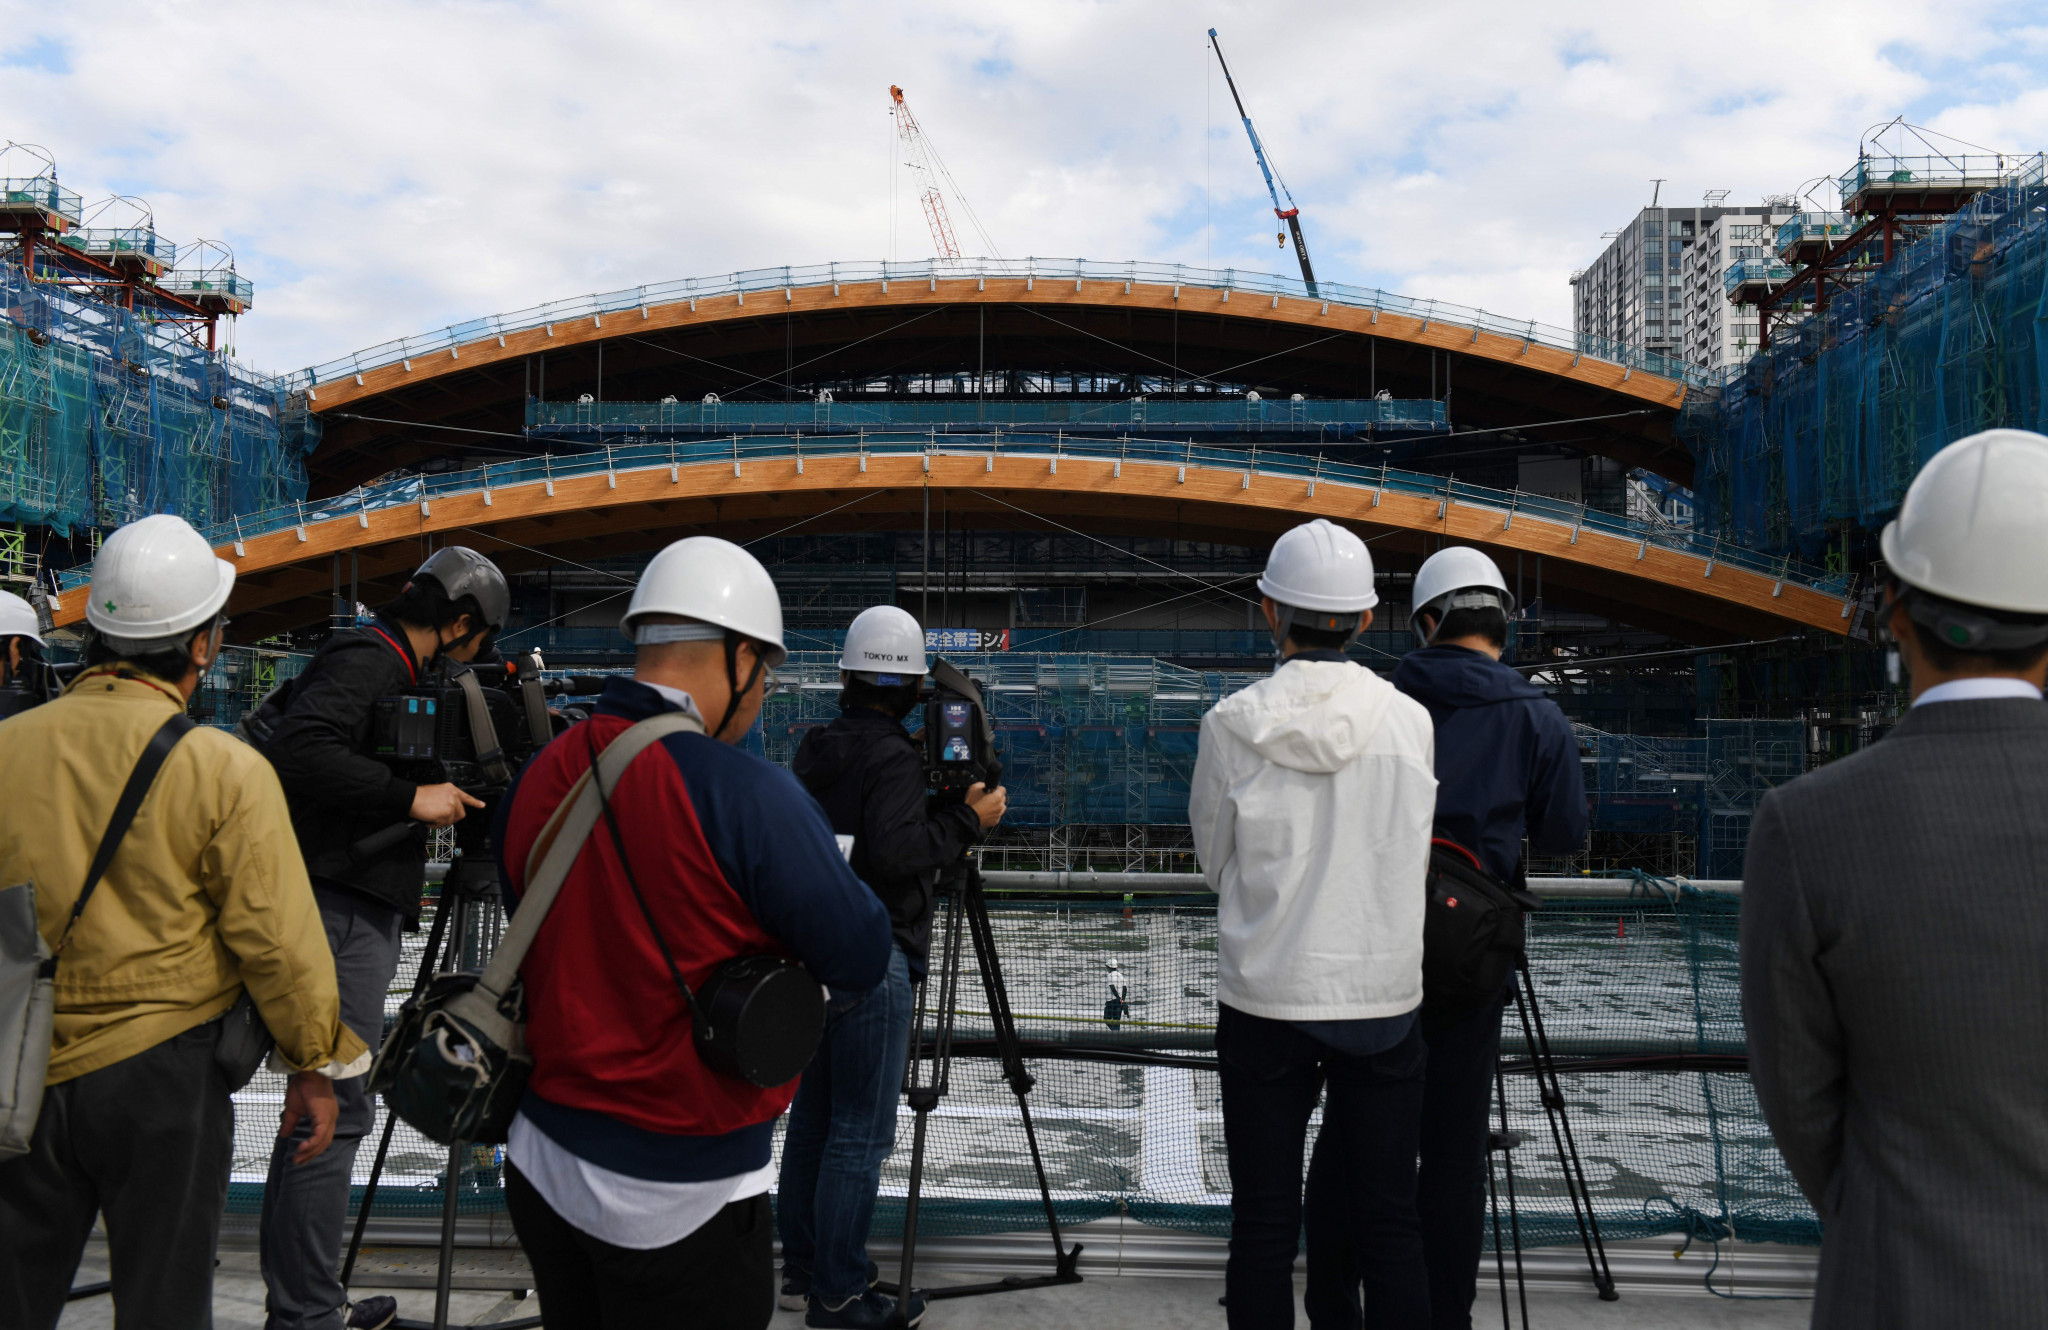 Construction of the arena's wooden roof has reached the half way stage ©Getty Images